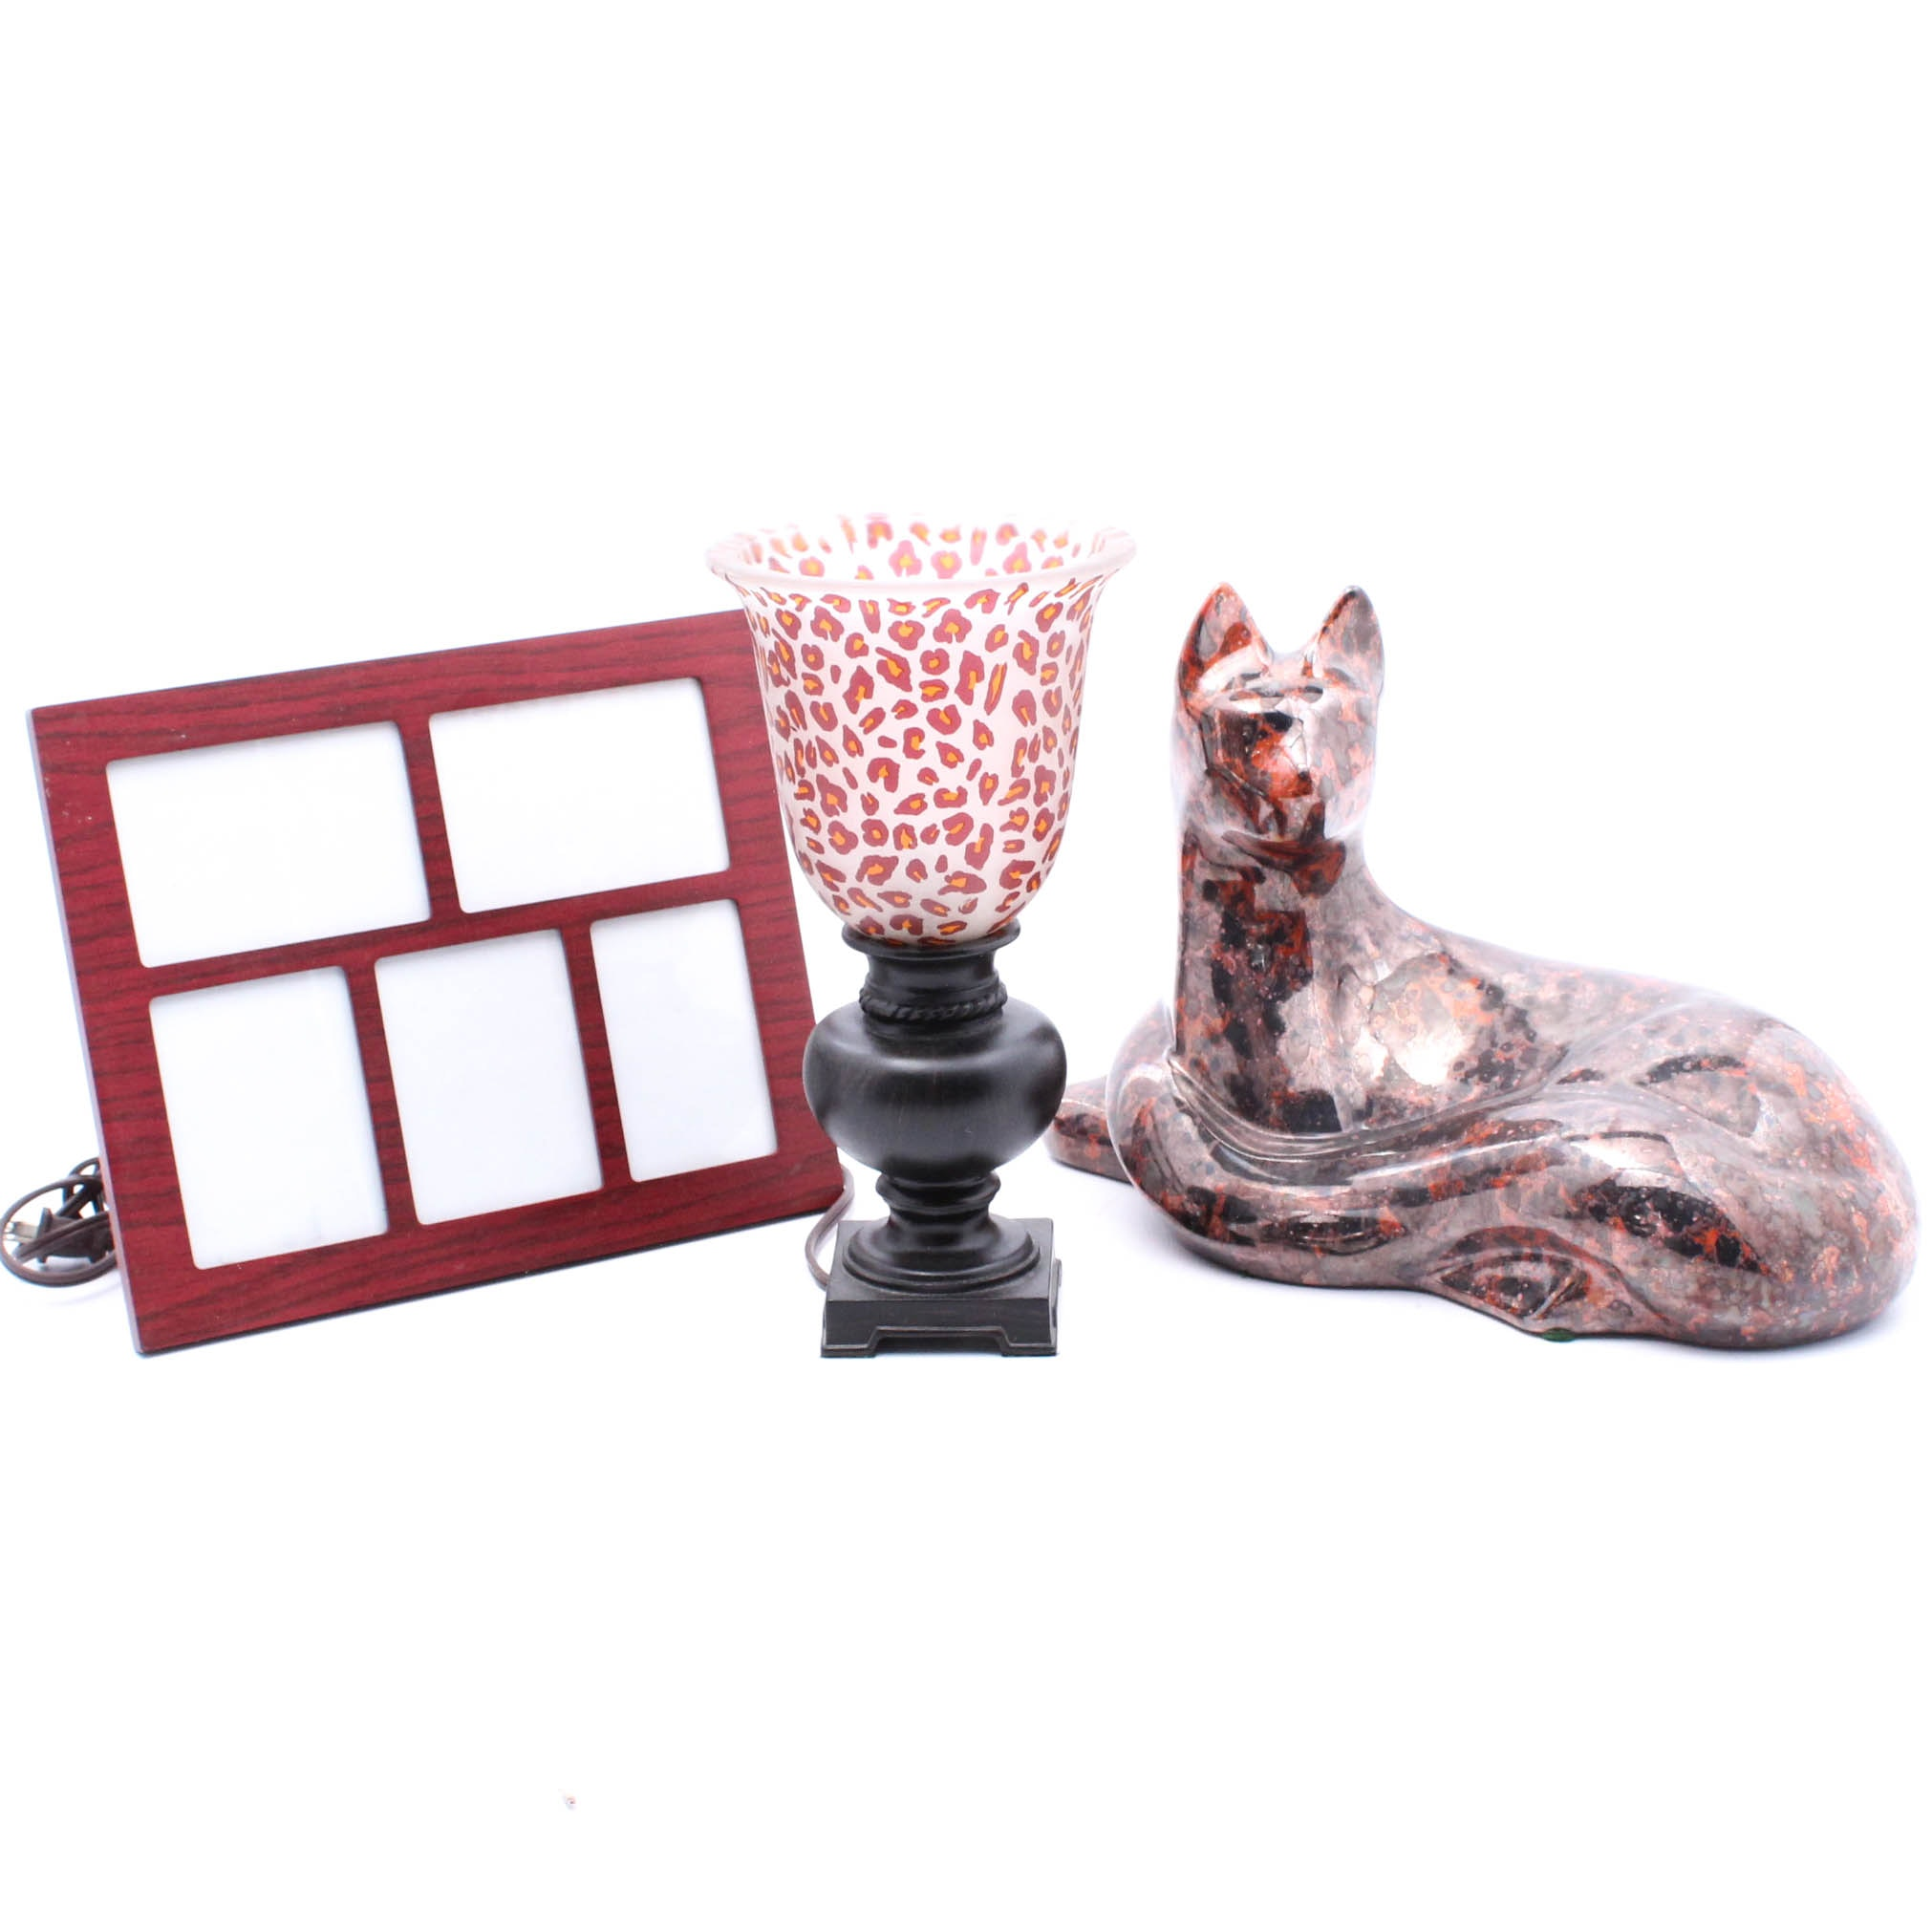 Haeger Glazed Ceramic Cat with Lamp and Picture Frame